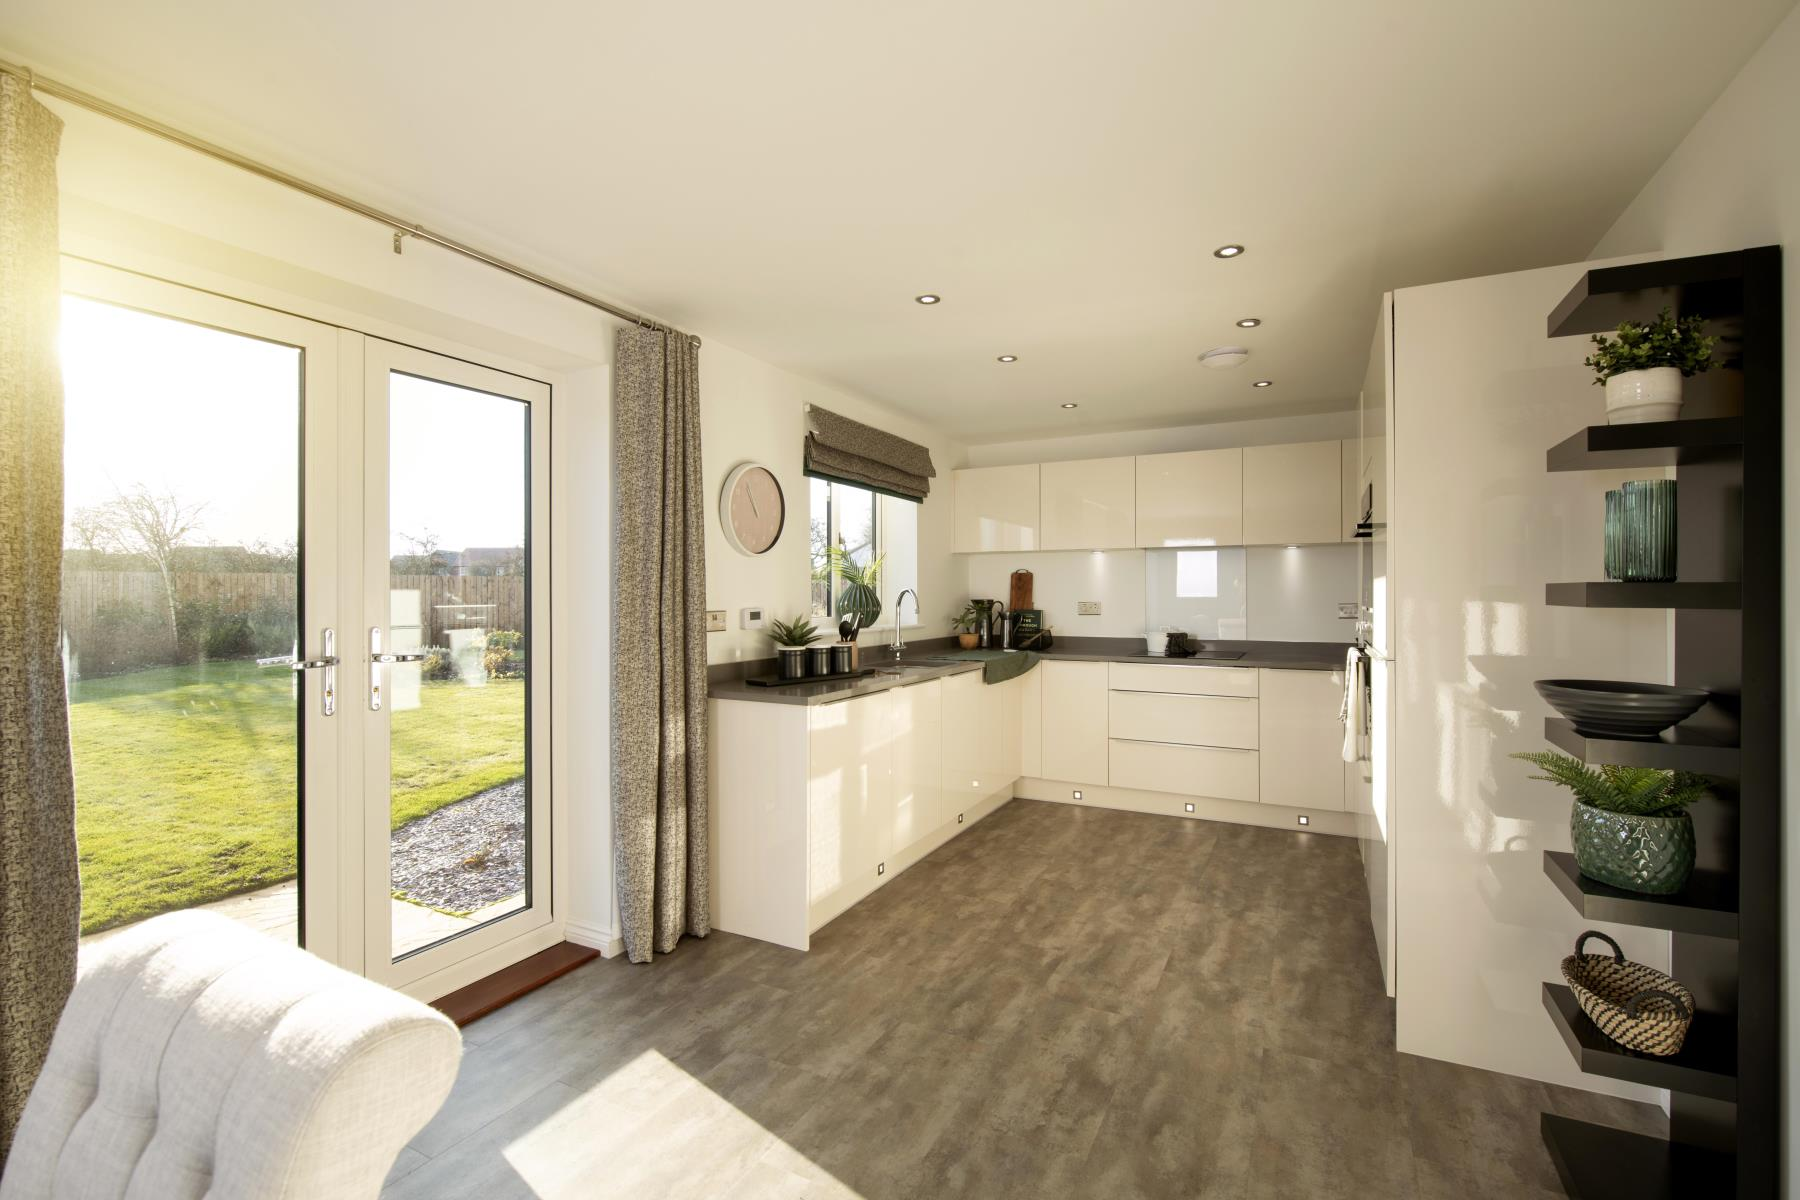 Kitchen 020_twne_eden_gardens_downham_AND3344_b